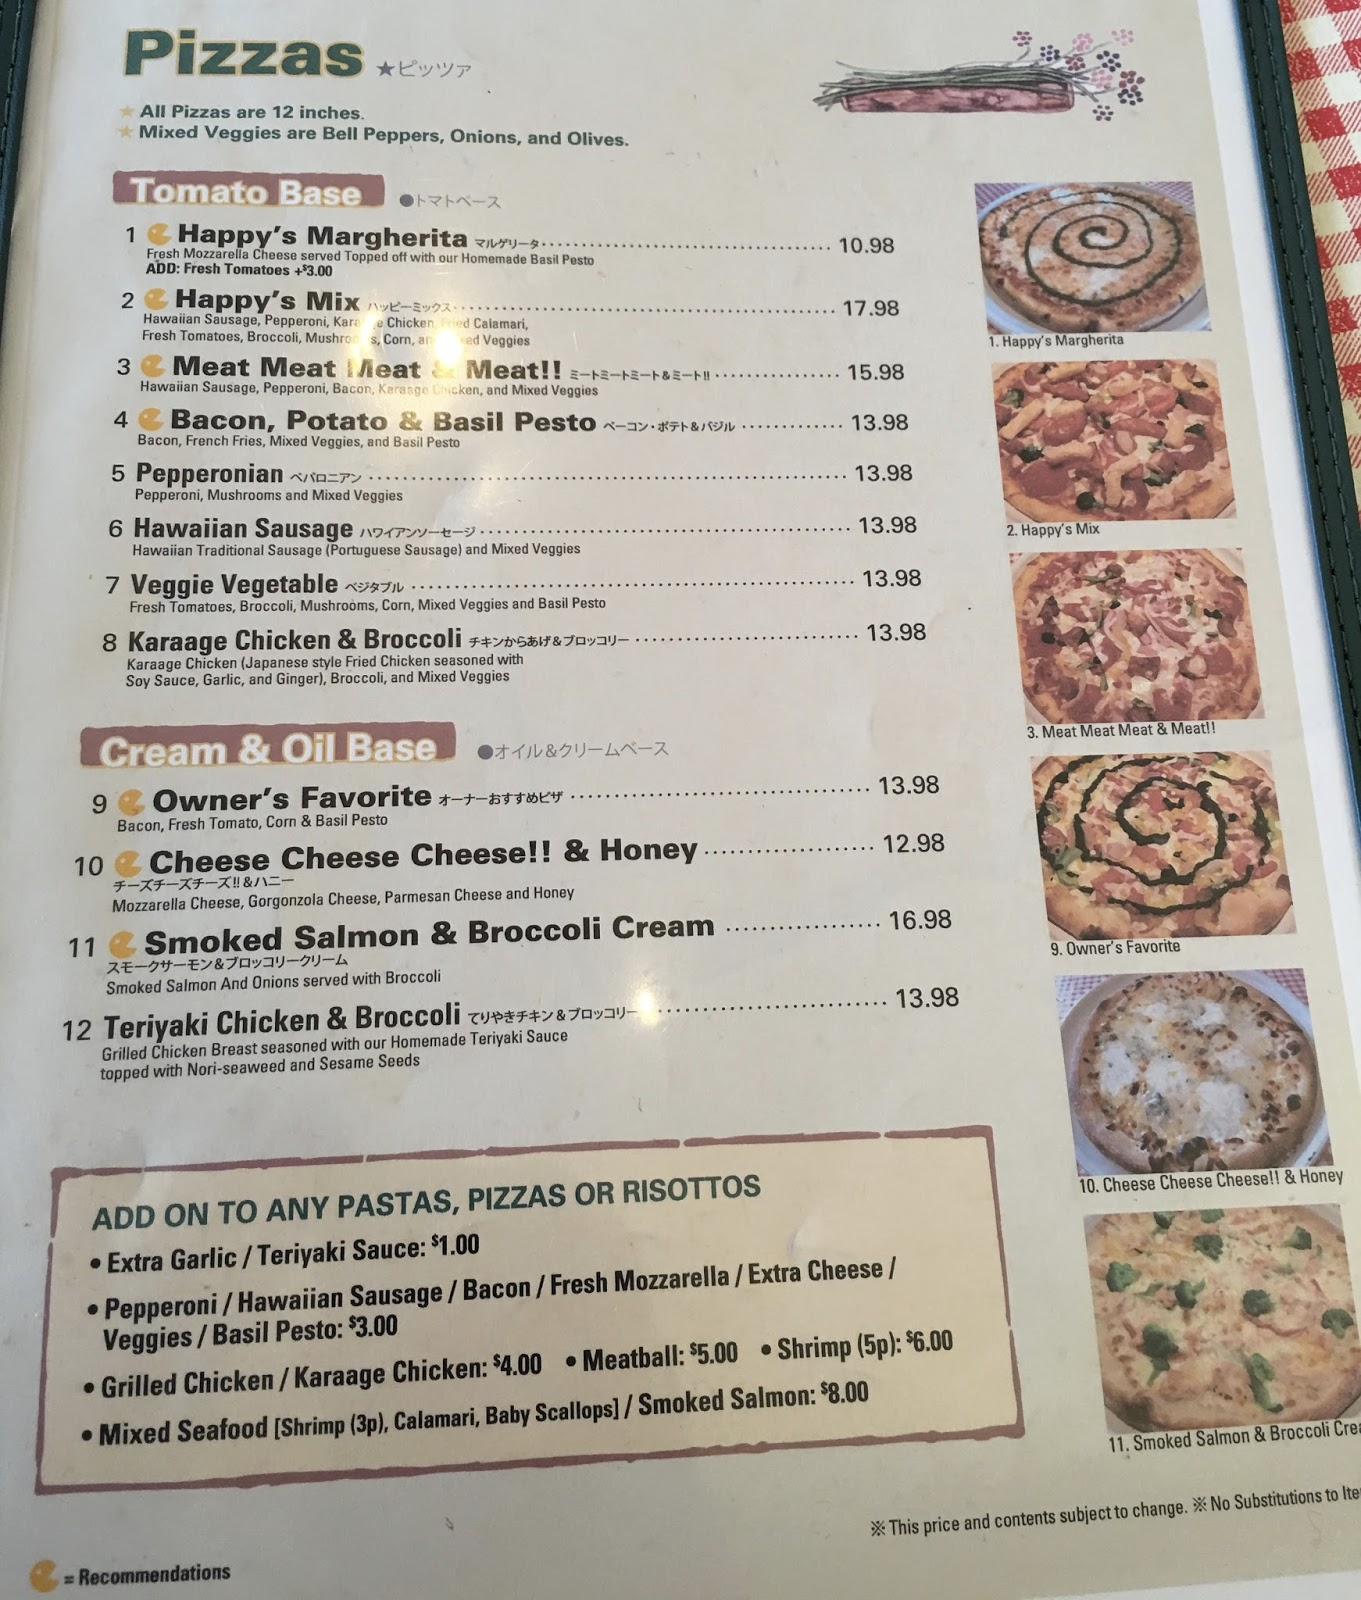 Prego Cucina Italiana Menu Taste Of Hawaii Happy Valley Pasta And Pizza